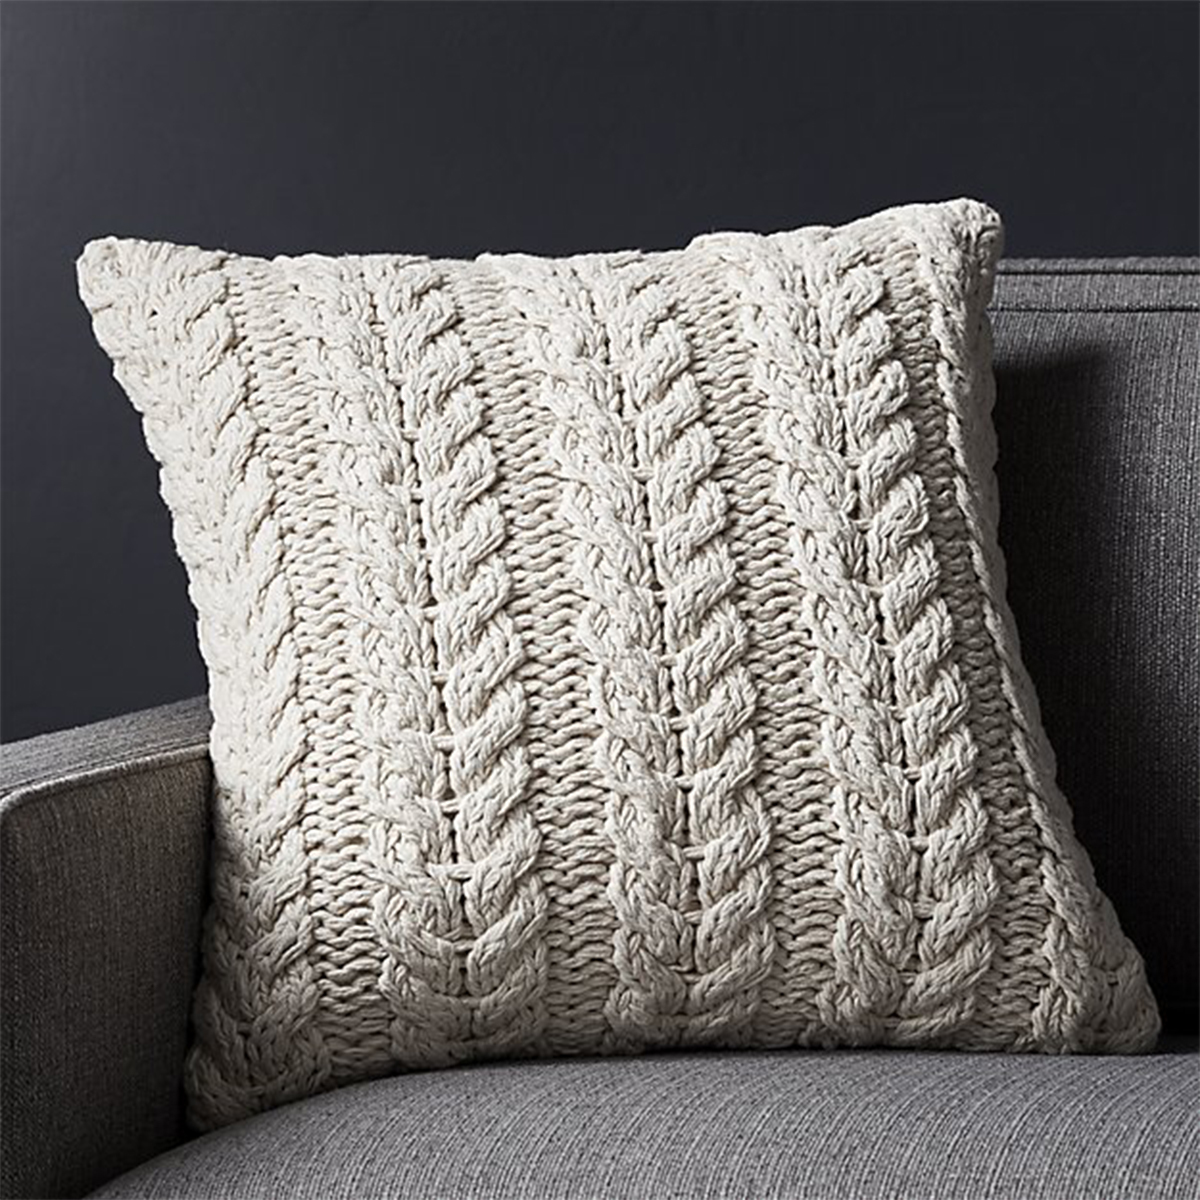 Decorative cable-knit pillow in a neutral hue photo